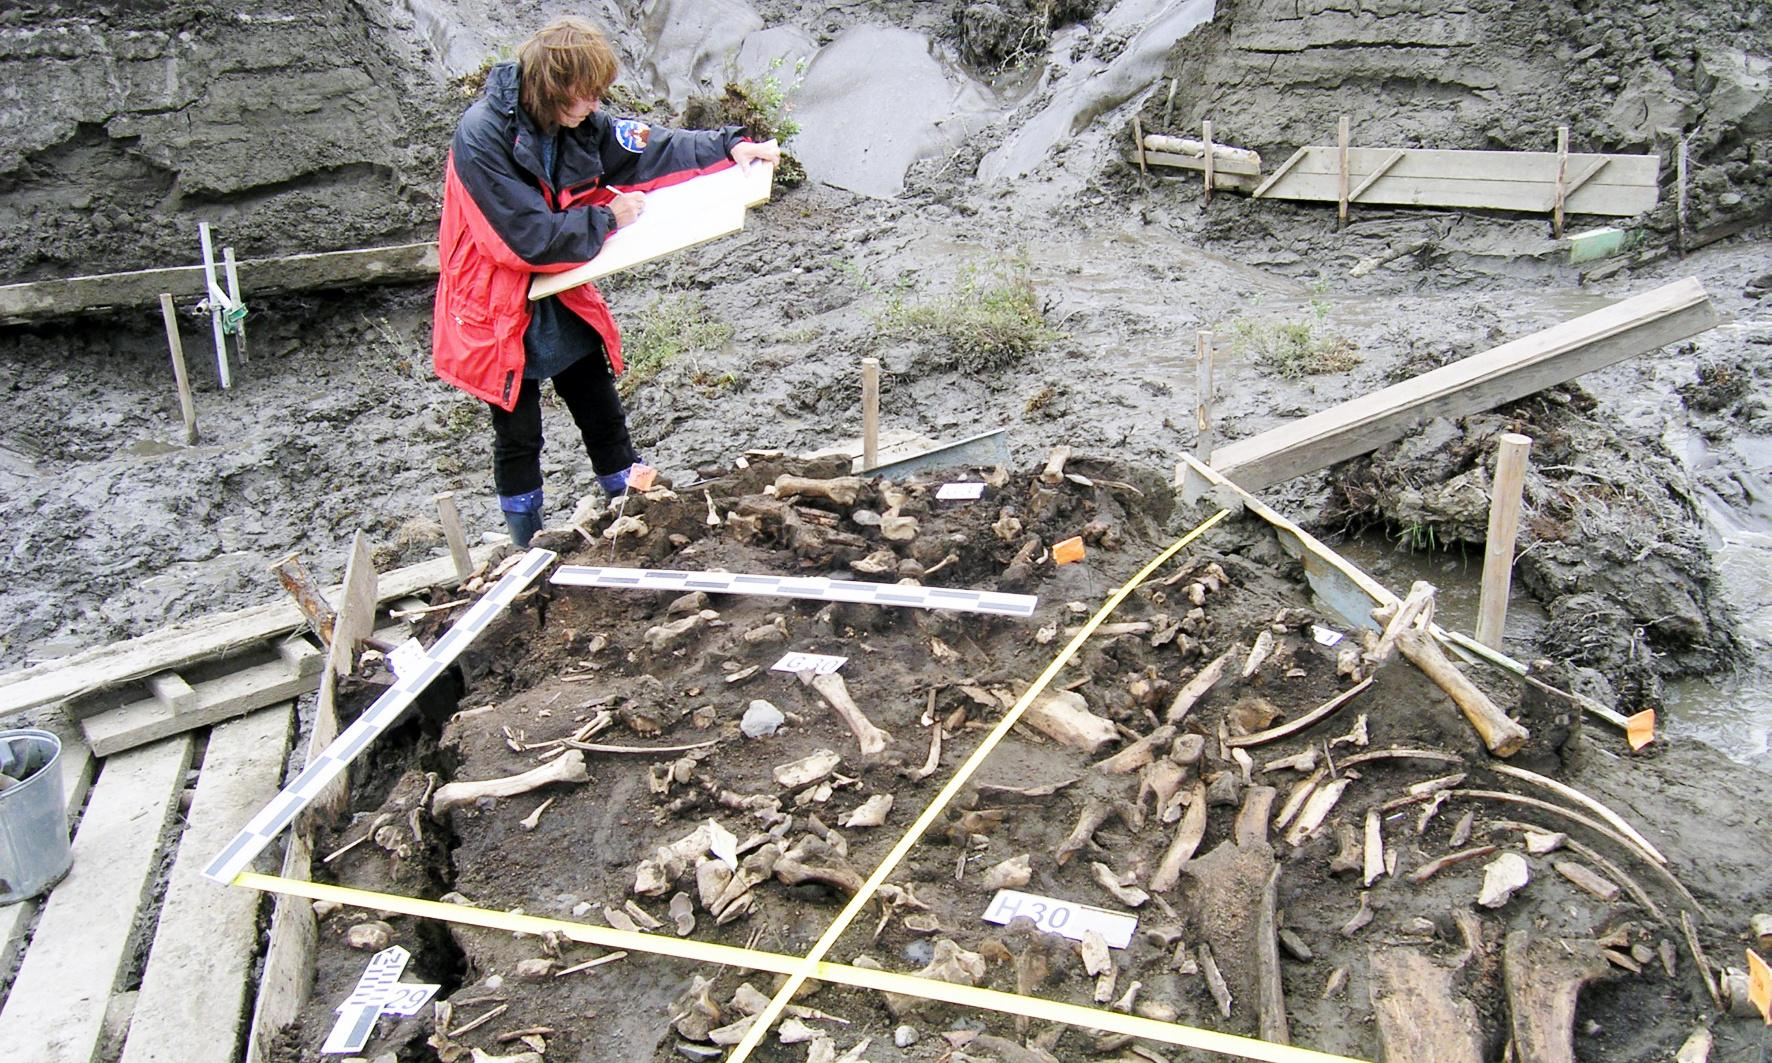 Ancient Siberia was home to previously unknown humans, say scientists